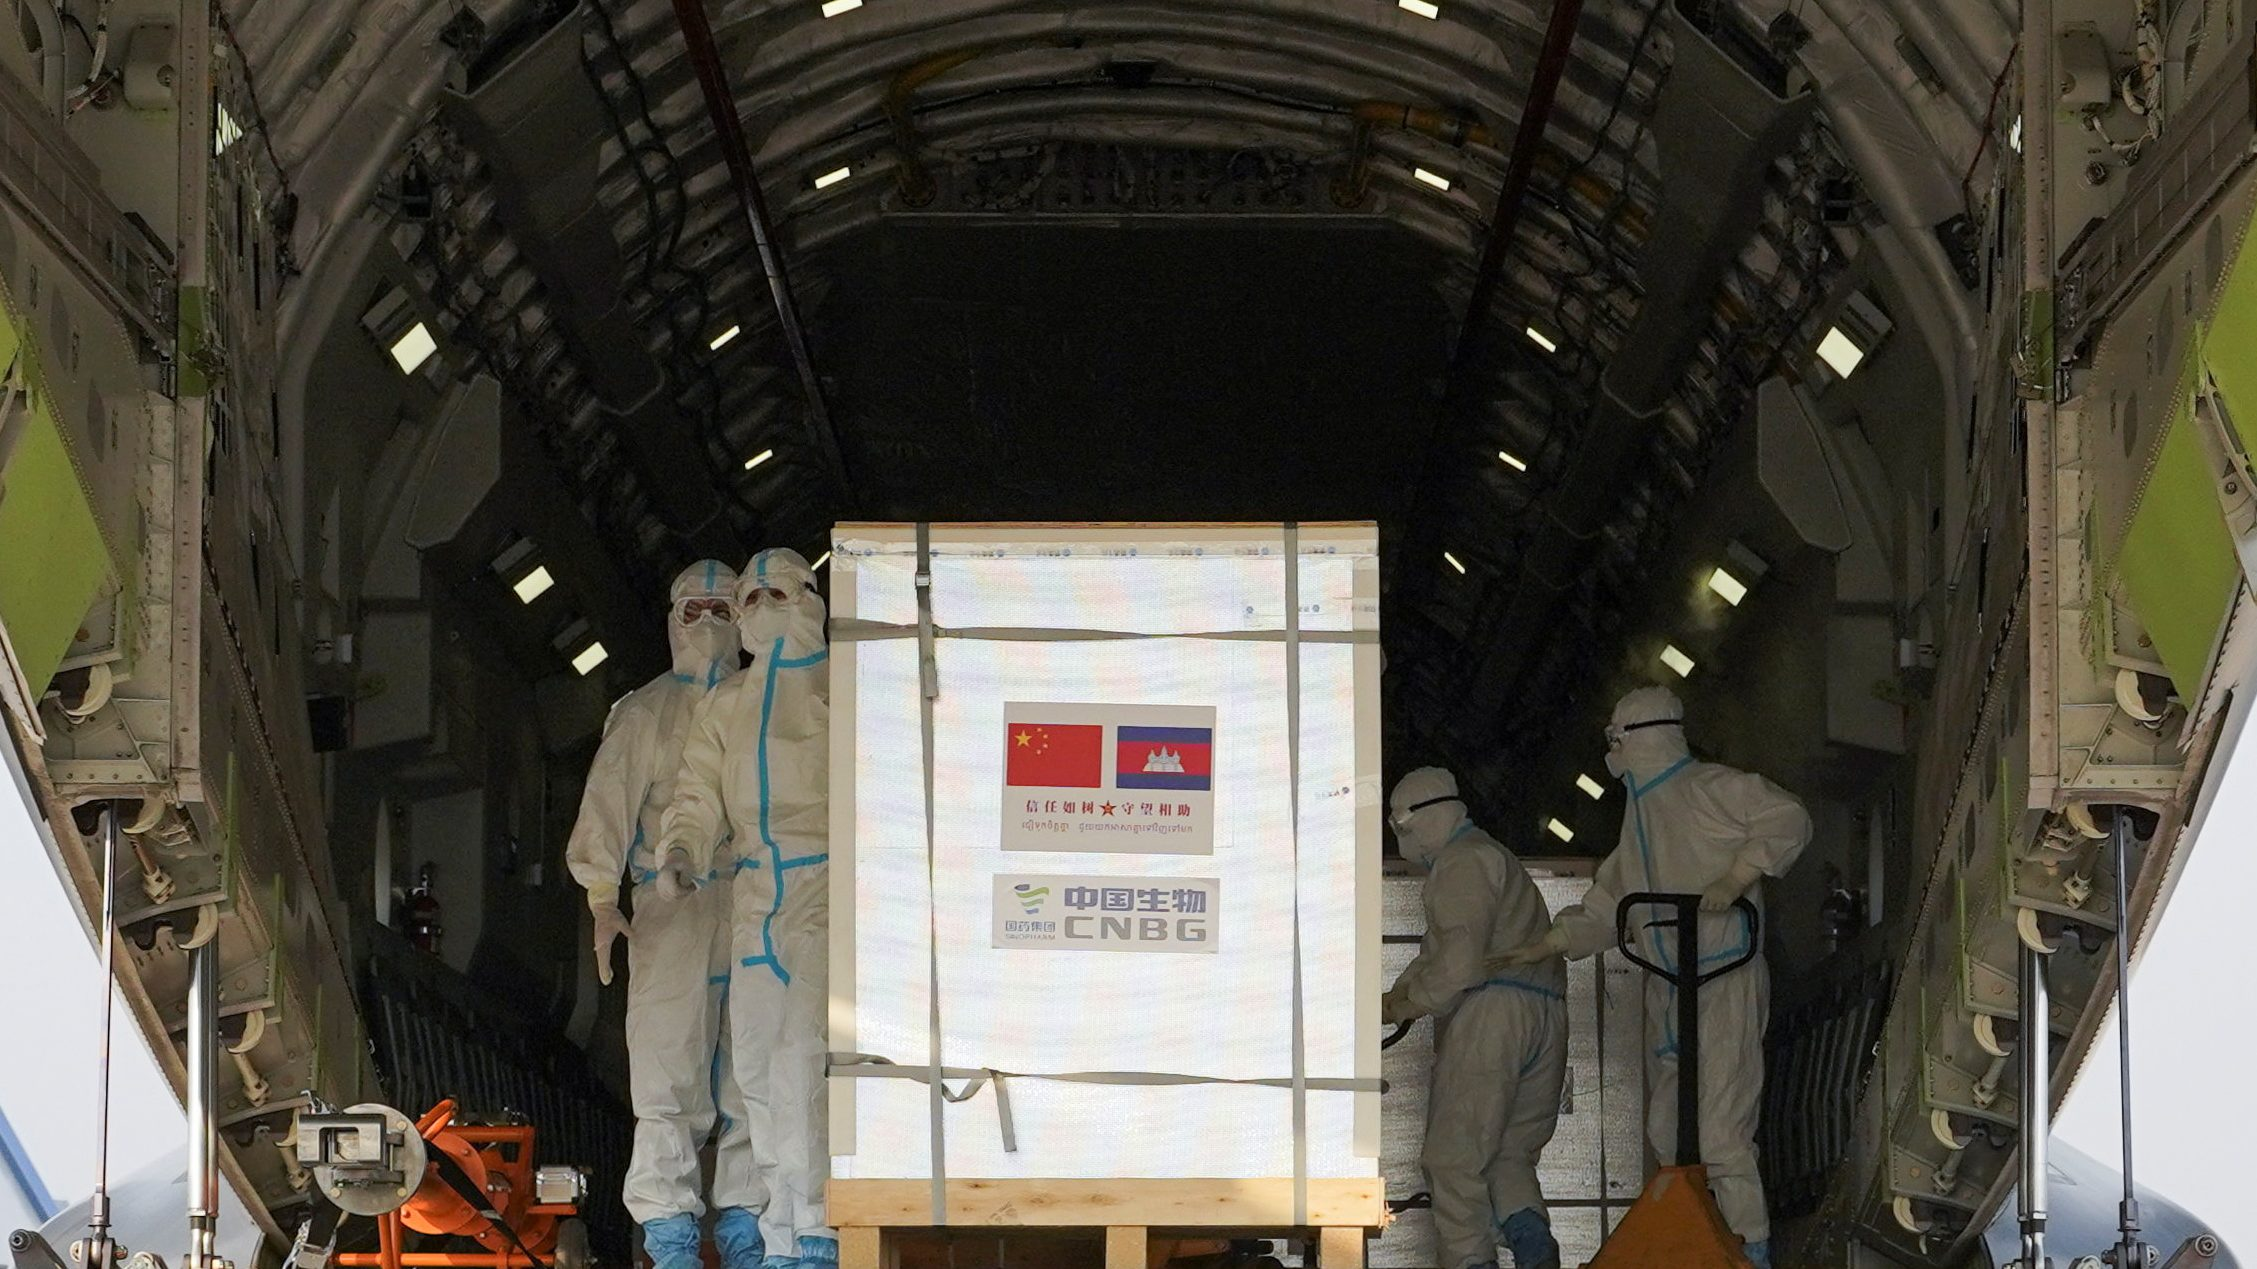 A shipment of 600,000 doses of COVID-19 vaccines donated by China arrives at the Phnom Penh International Airport